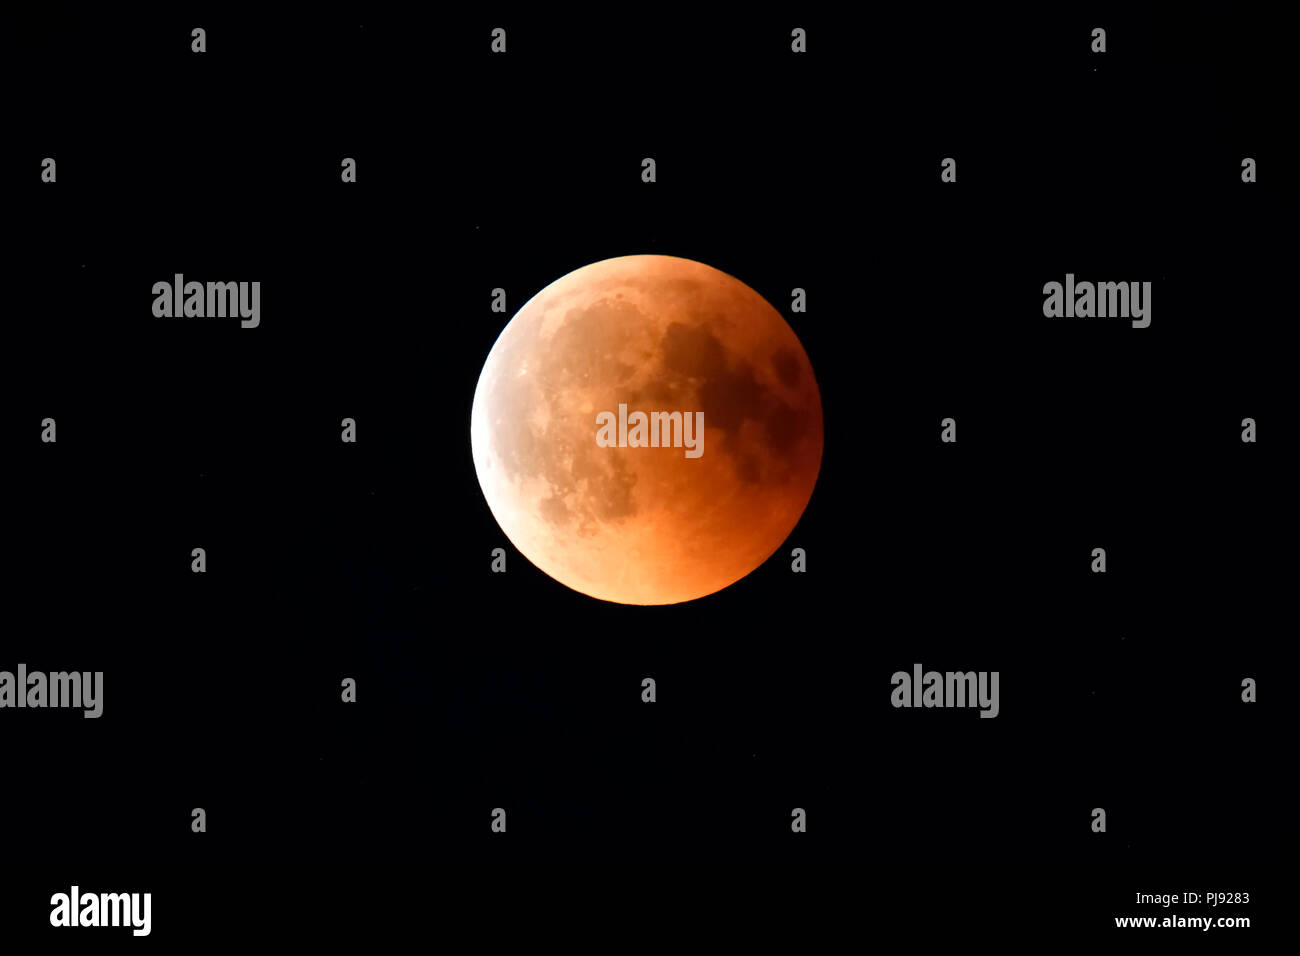 Complete lunar eclipse in the 7/27/2018 in Hamburg, Totale Mondfinsternis am 27.07.2018 in Hamburg - Stock Image